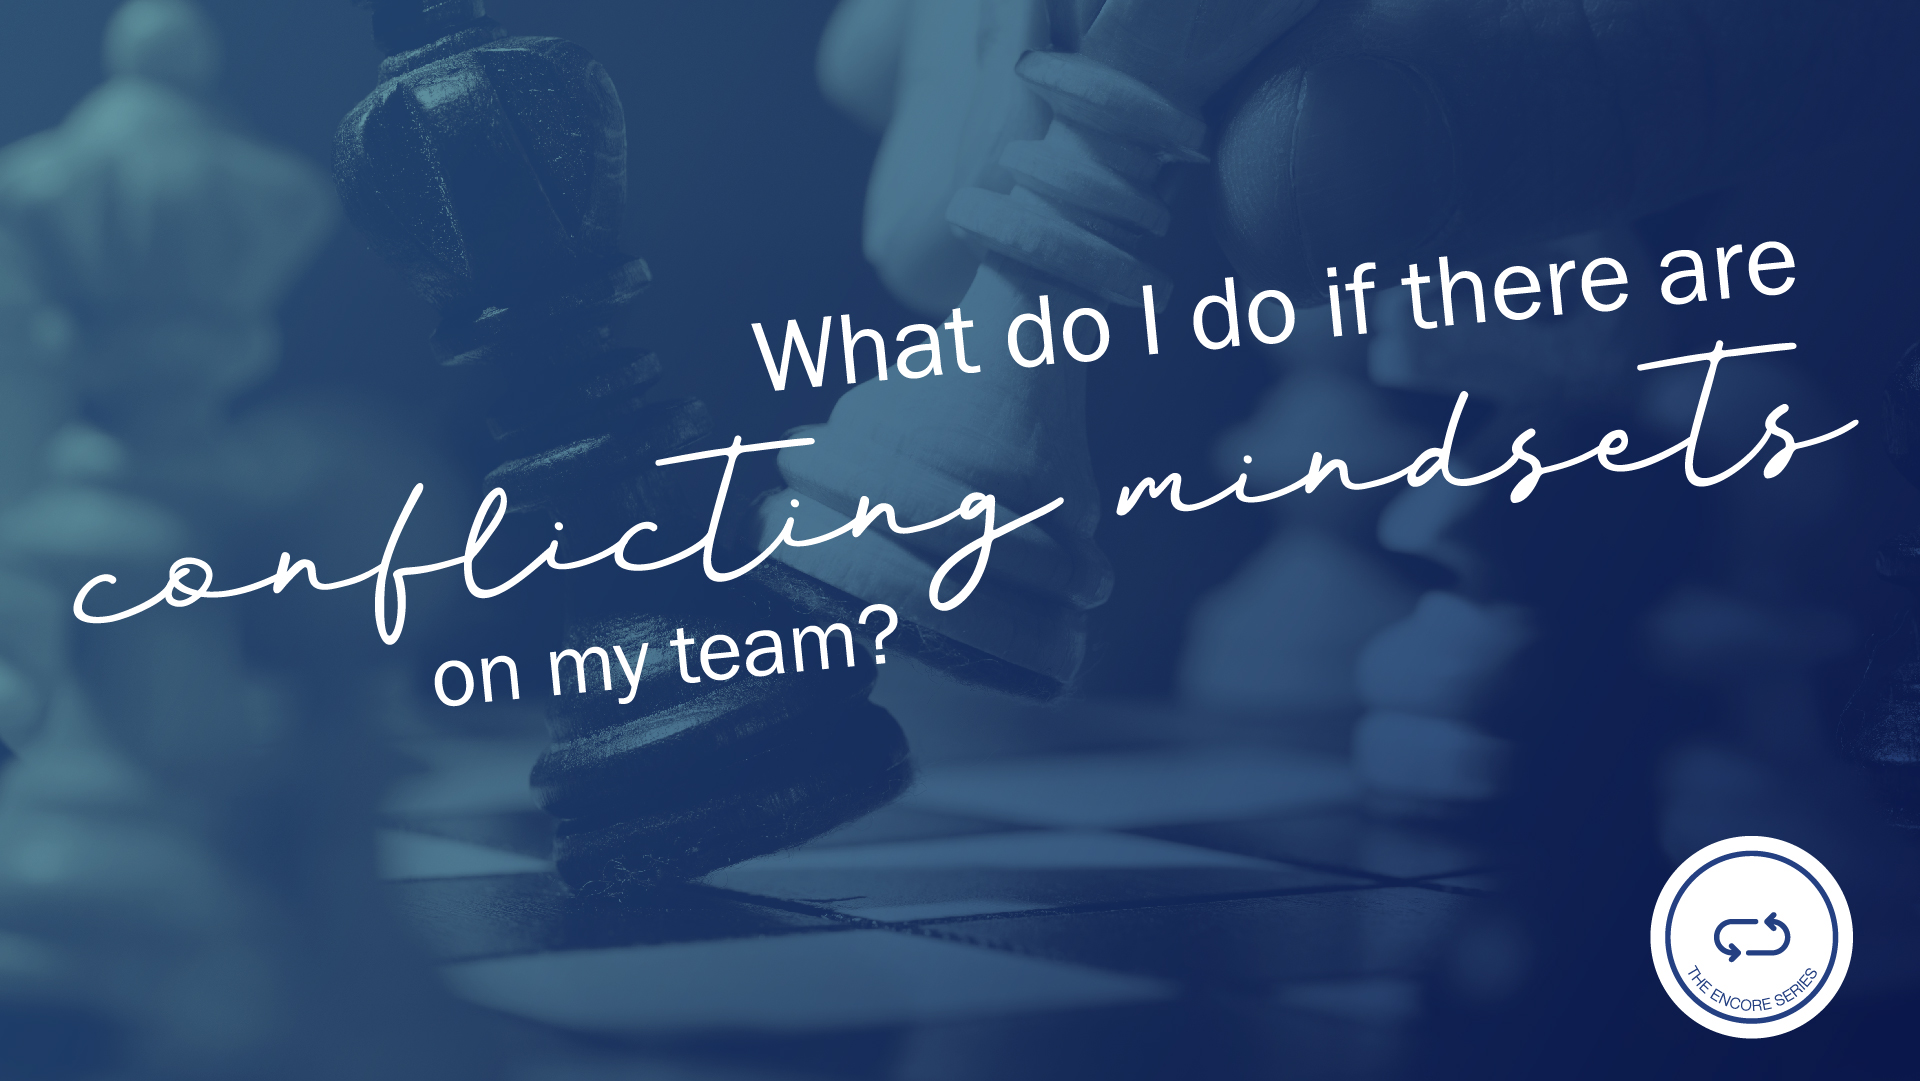 Splash Image for the video: What do I do if there are conflicting mindsets on my team?